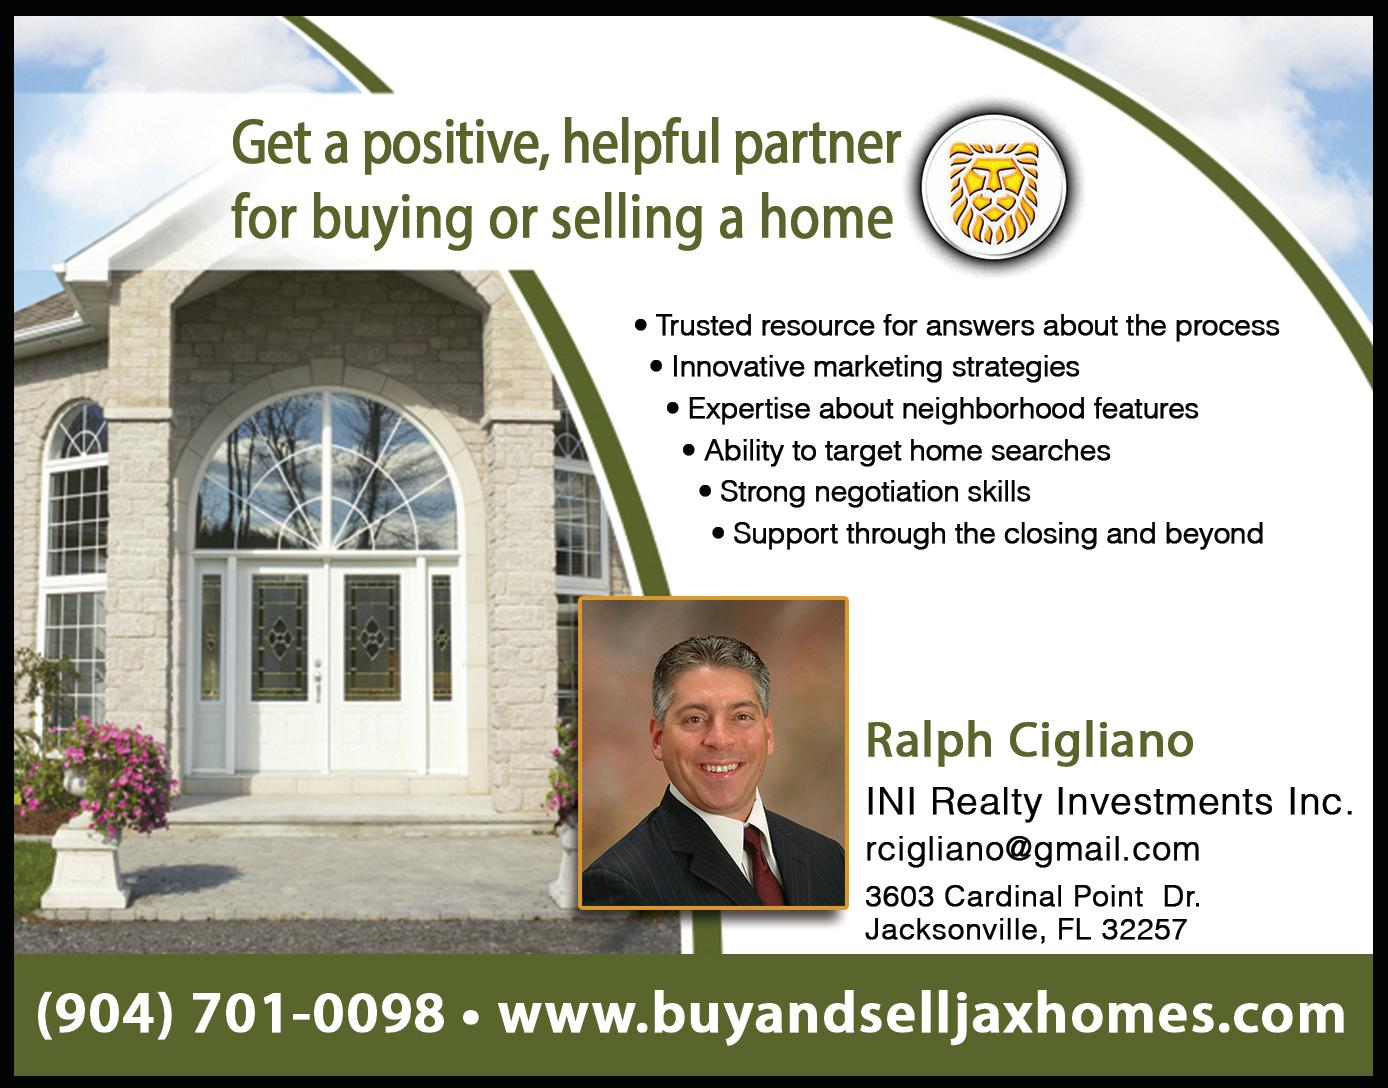 INI Realty Investments Inc.